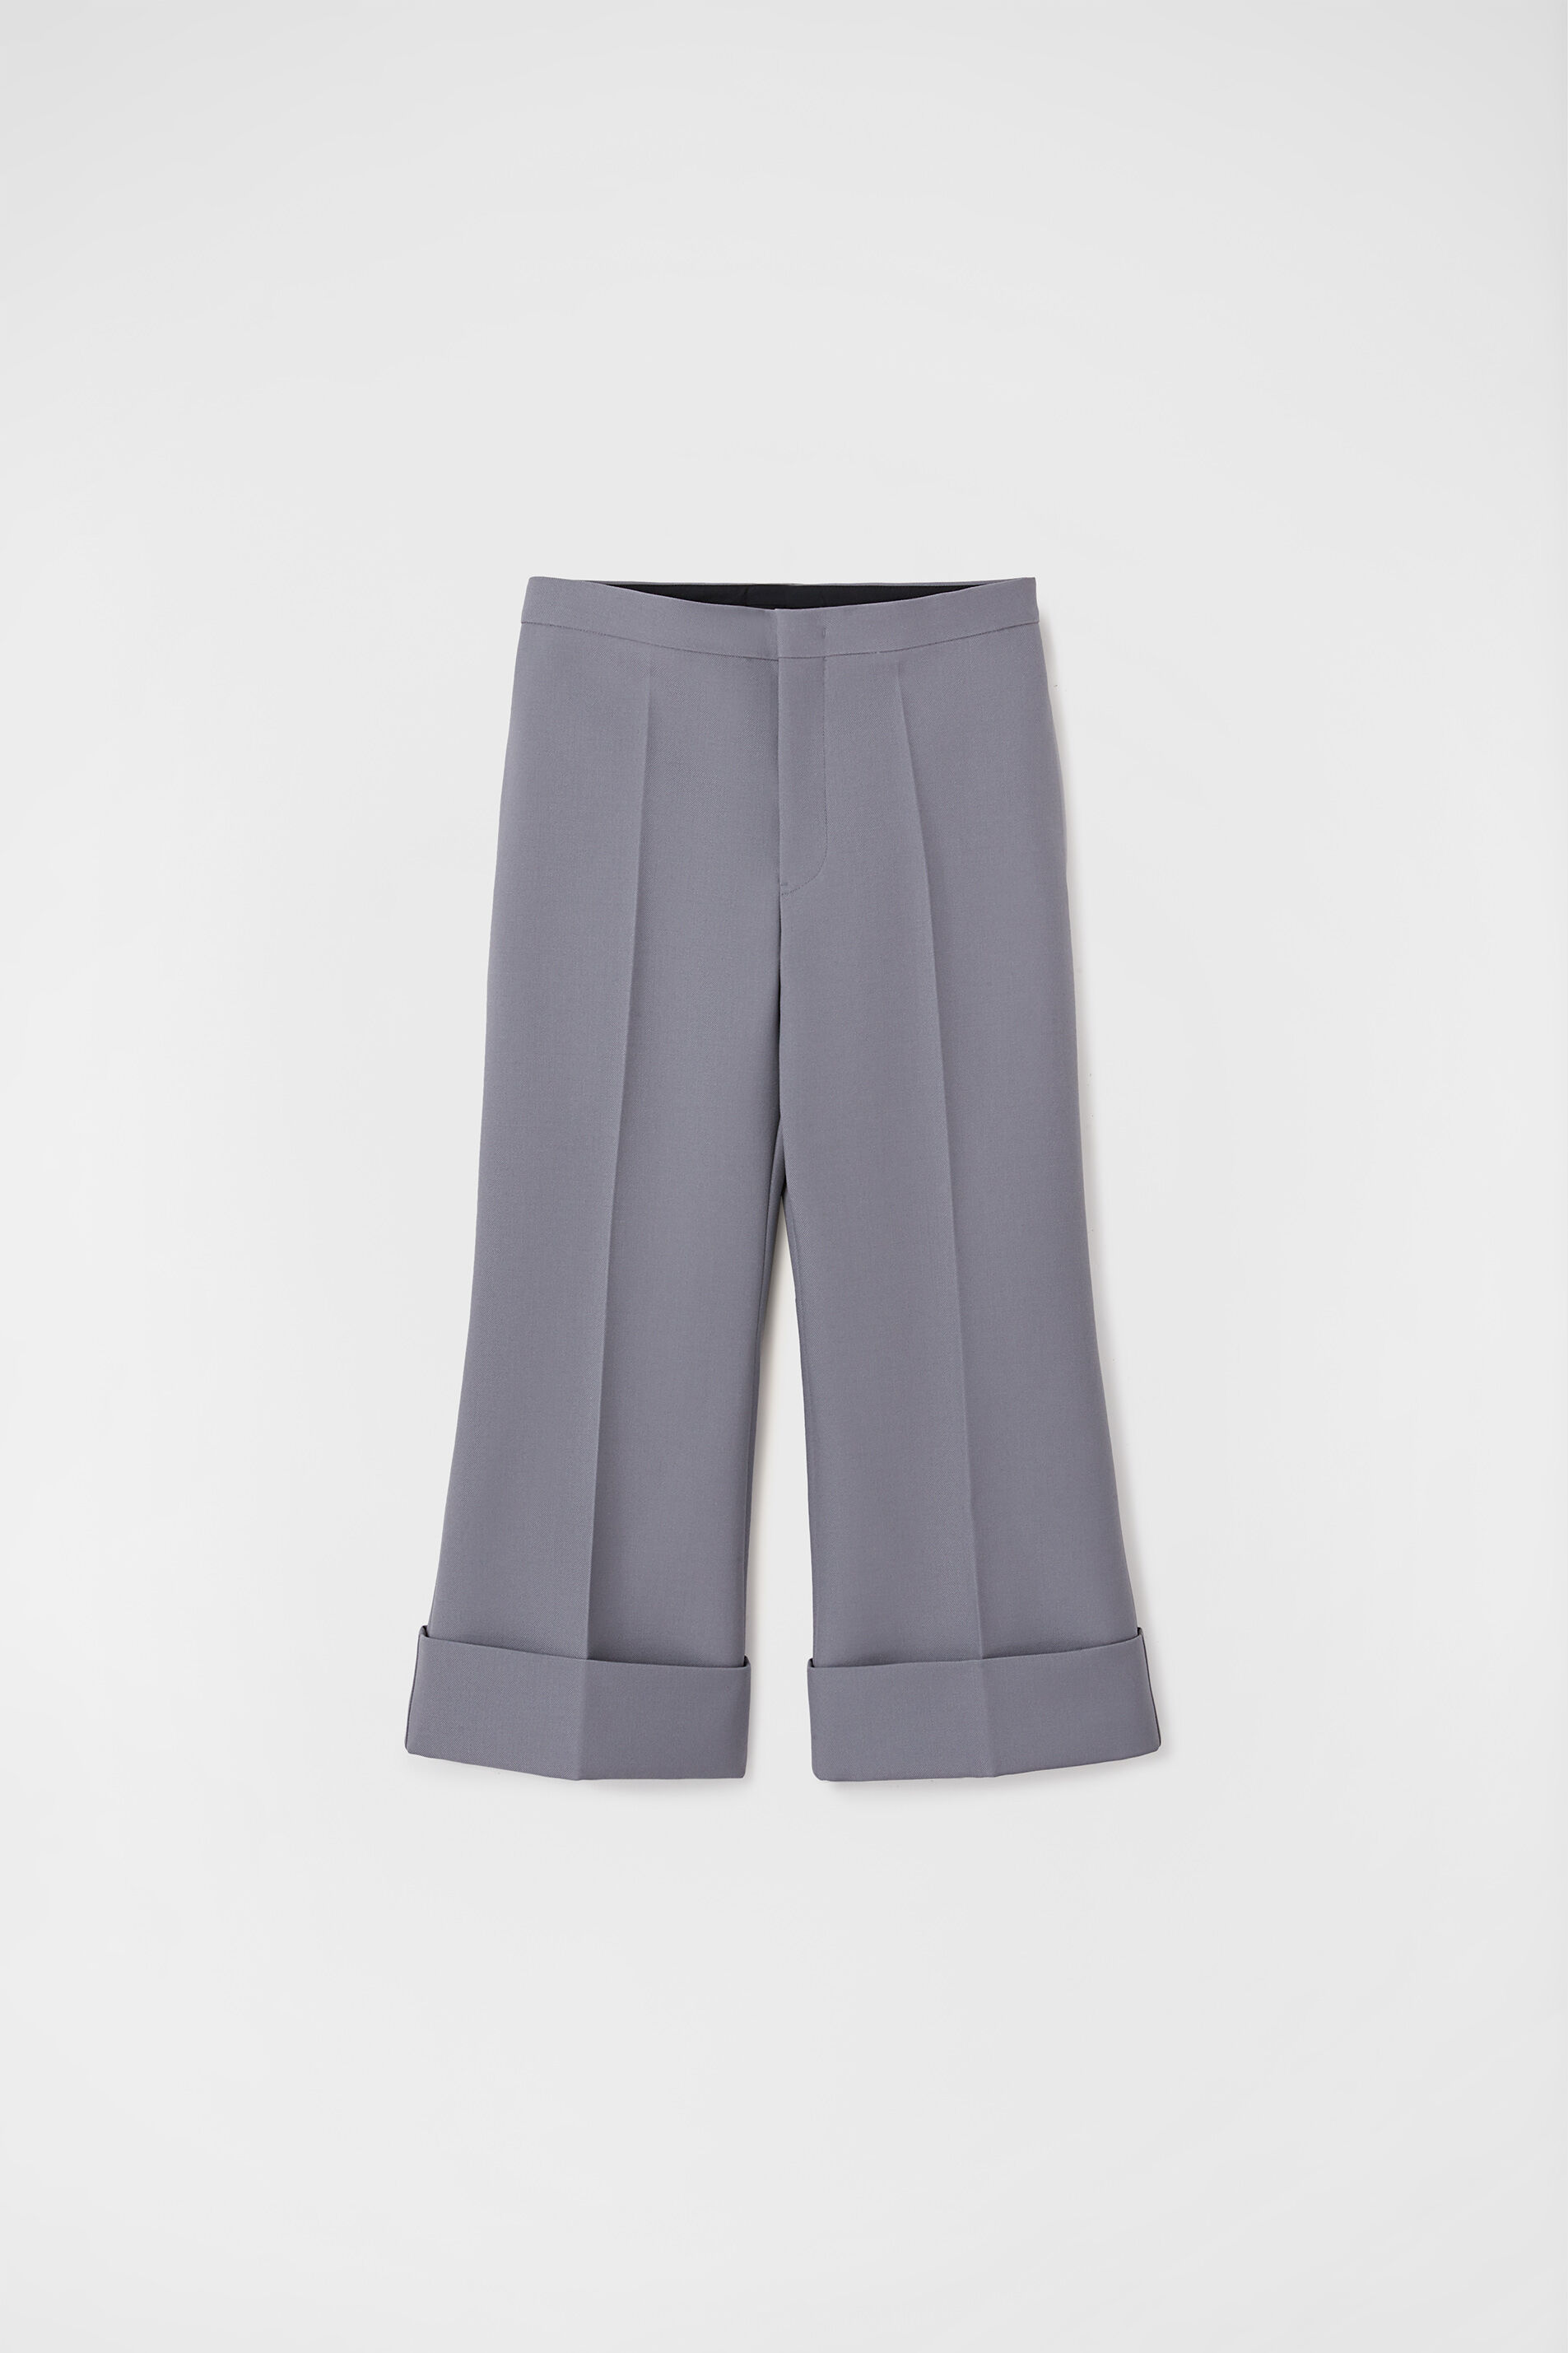 Tailored Trousers, grey, large